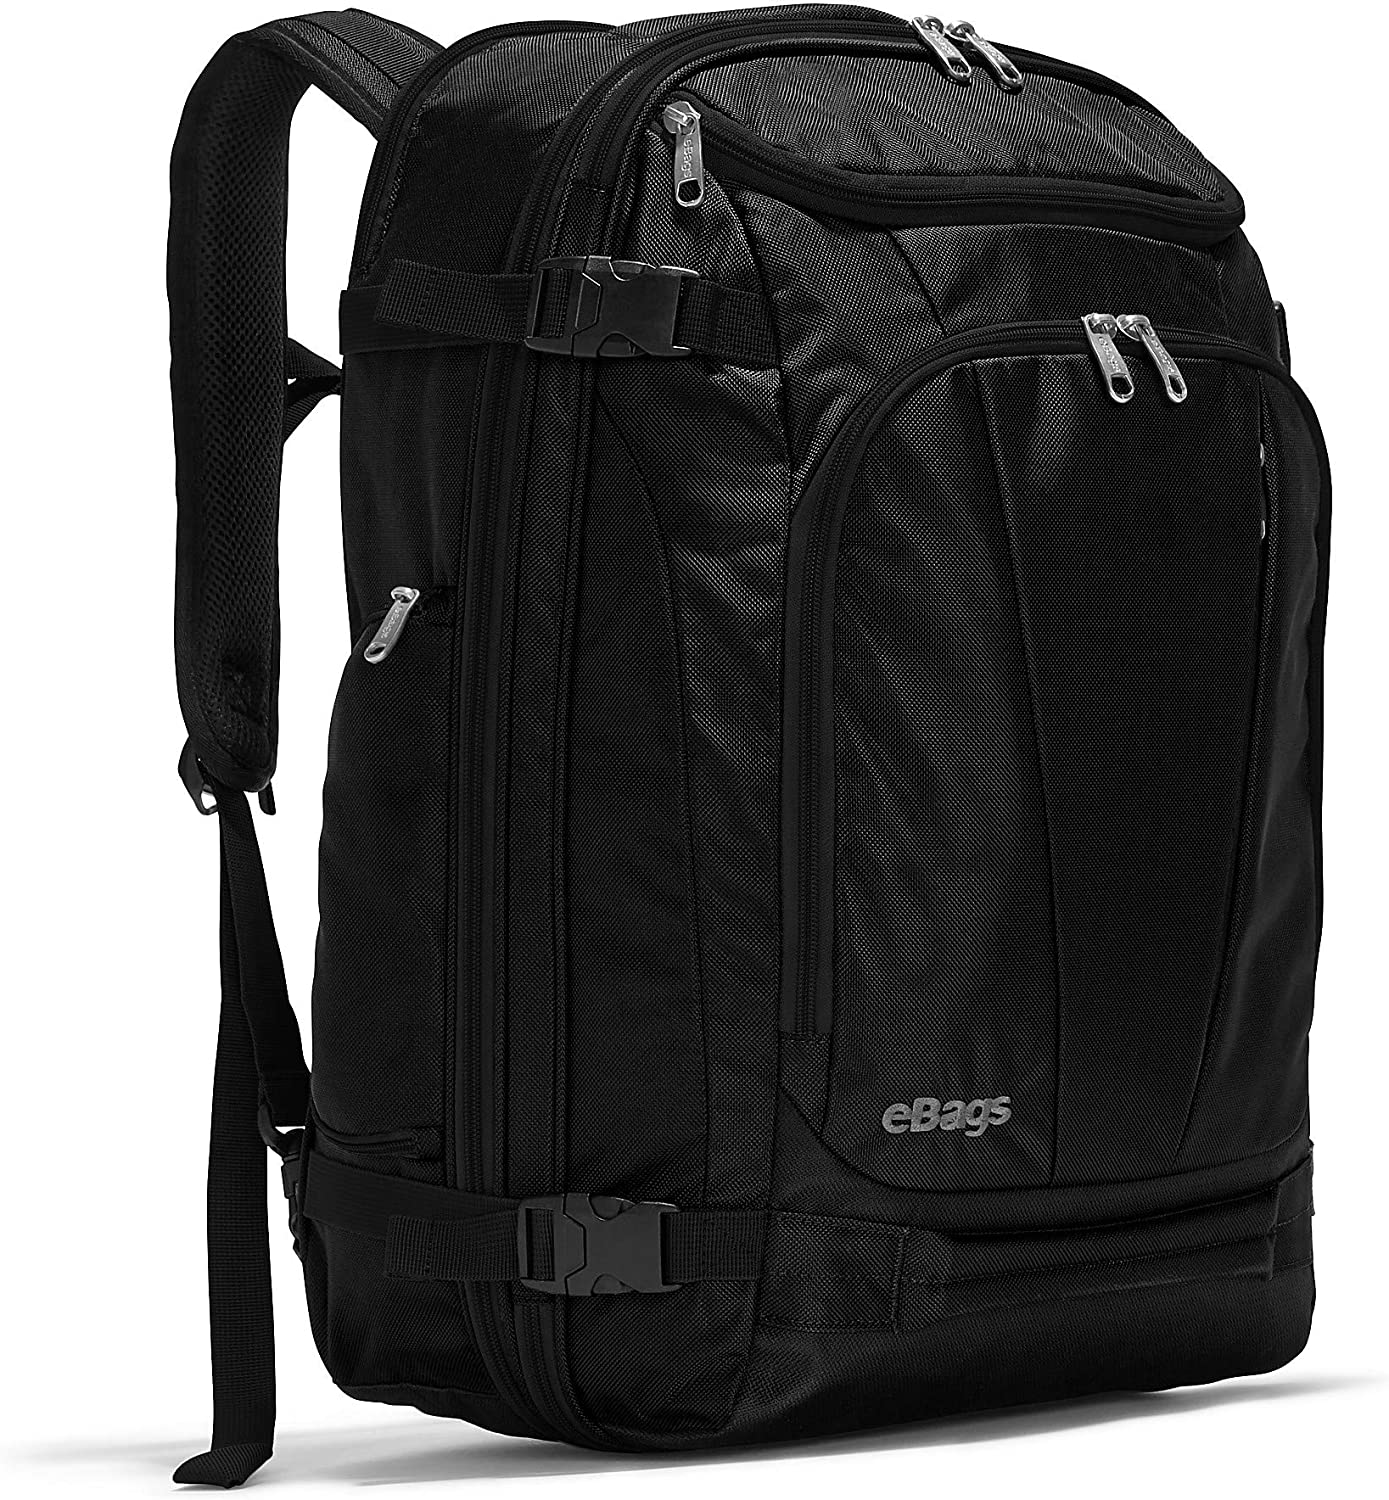 eBags Mother Lode Travel Backpack (Solid Black)